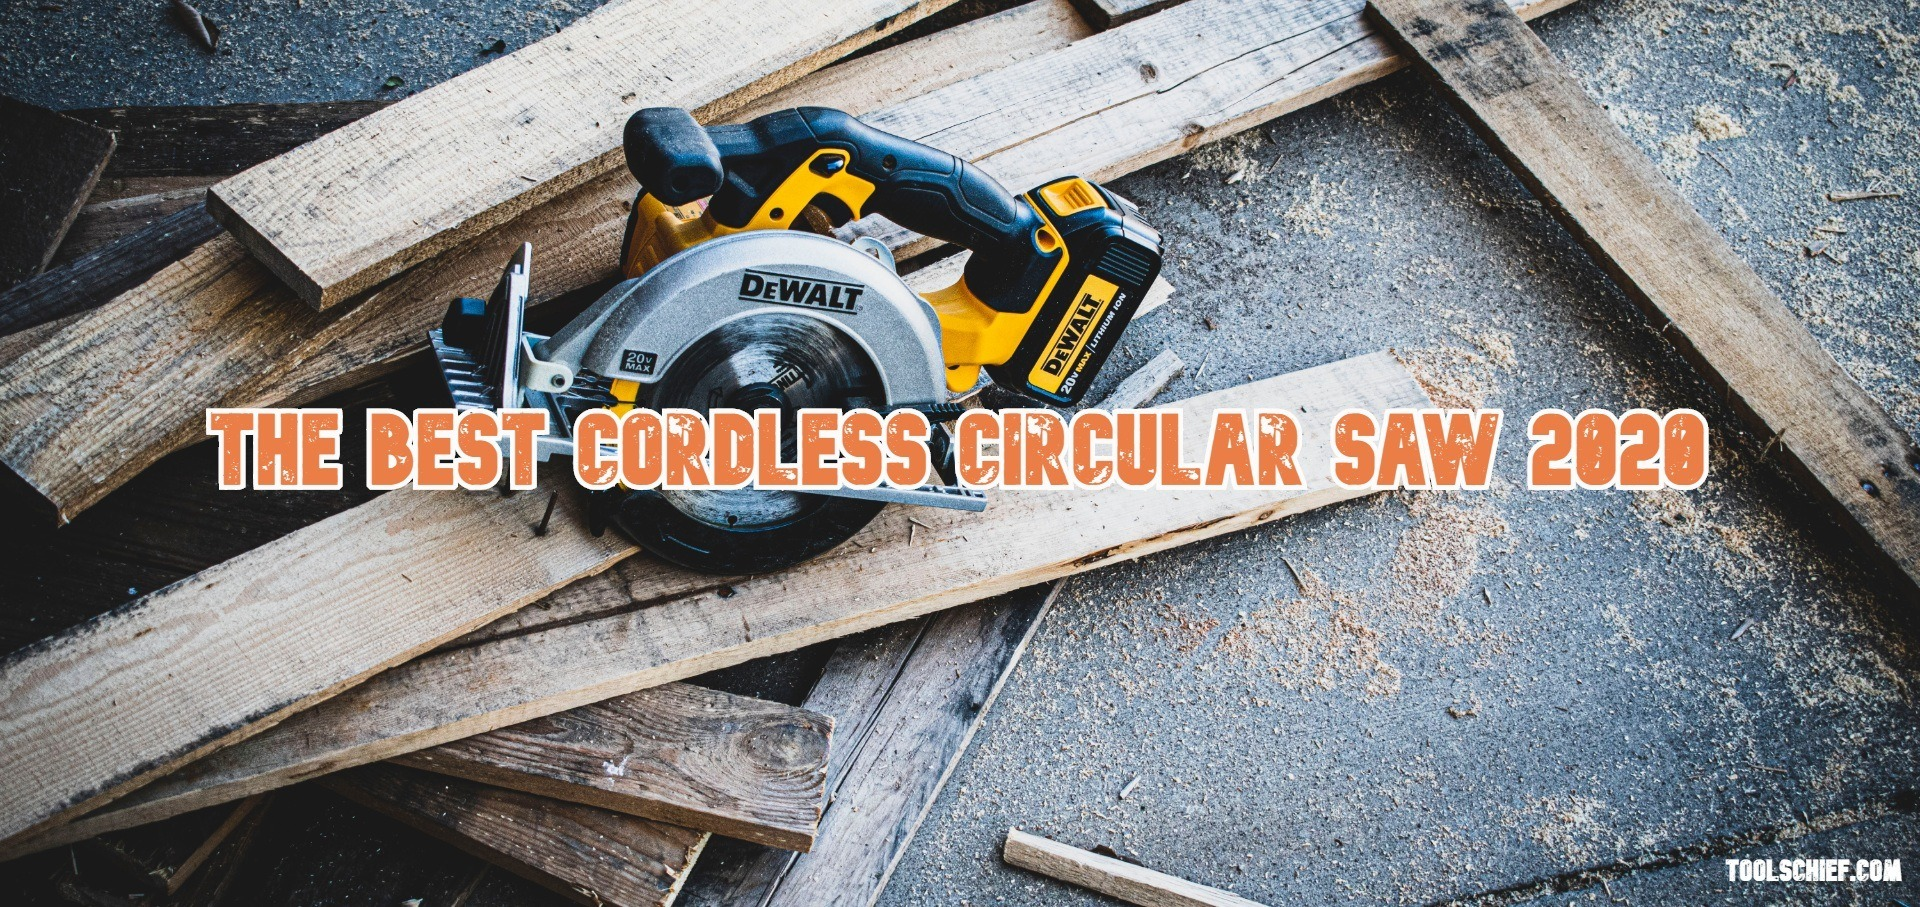 The Best Cordless Circular Saw 2020